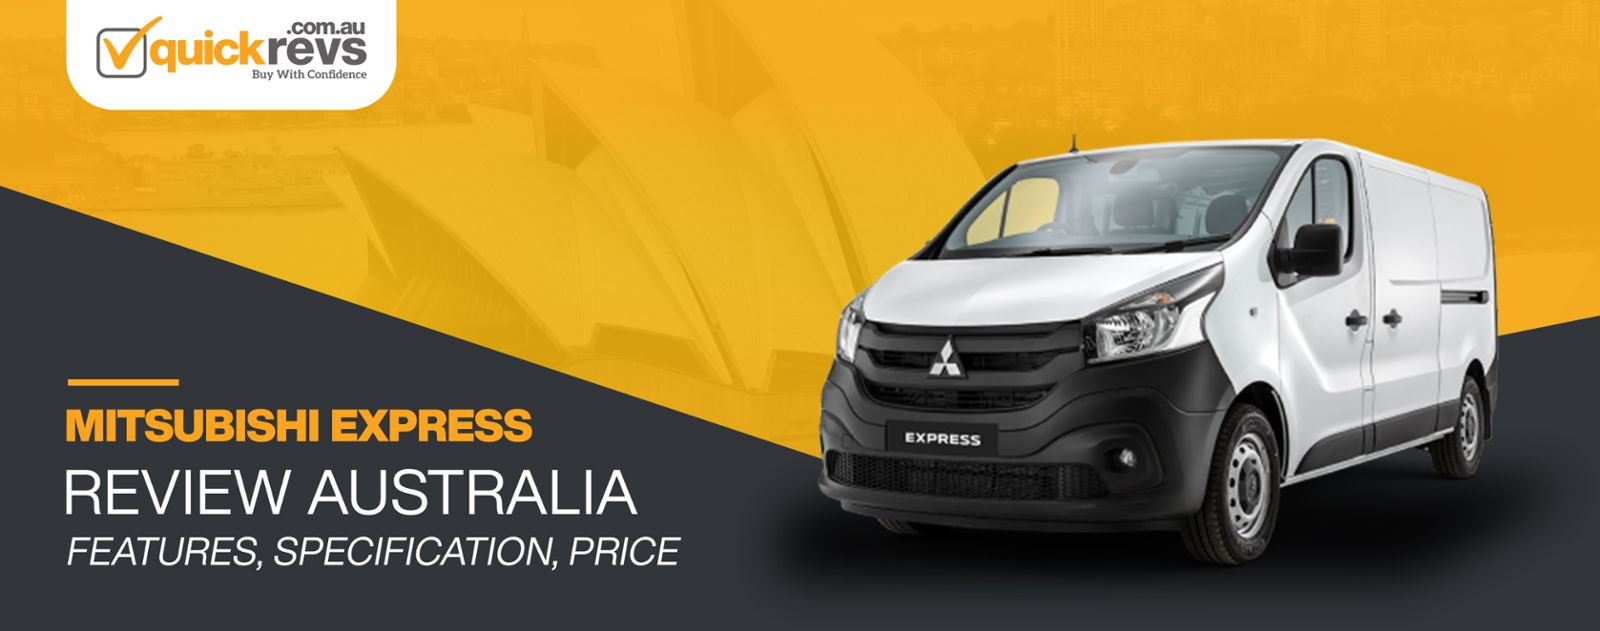 Mitsubishi Express Review Australia | Features, Specification, Price